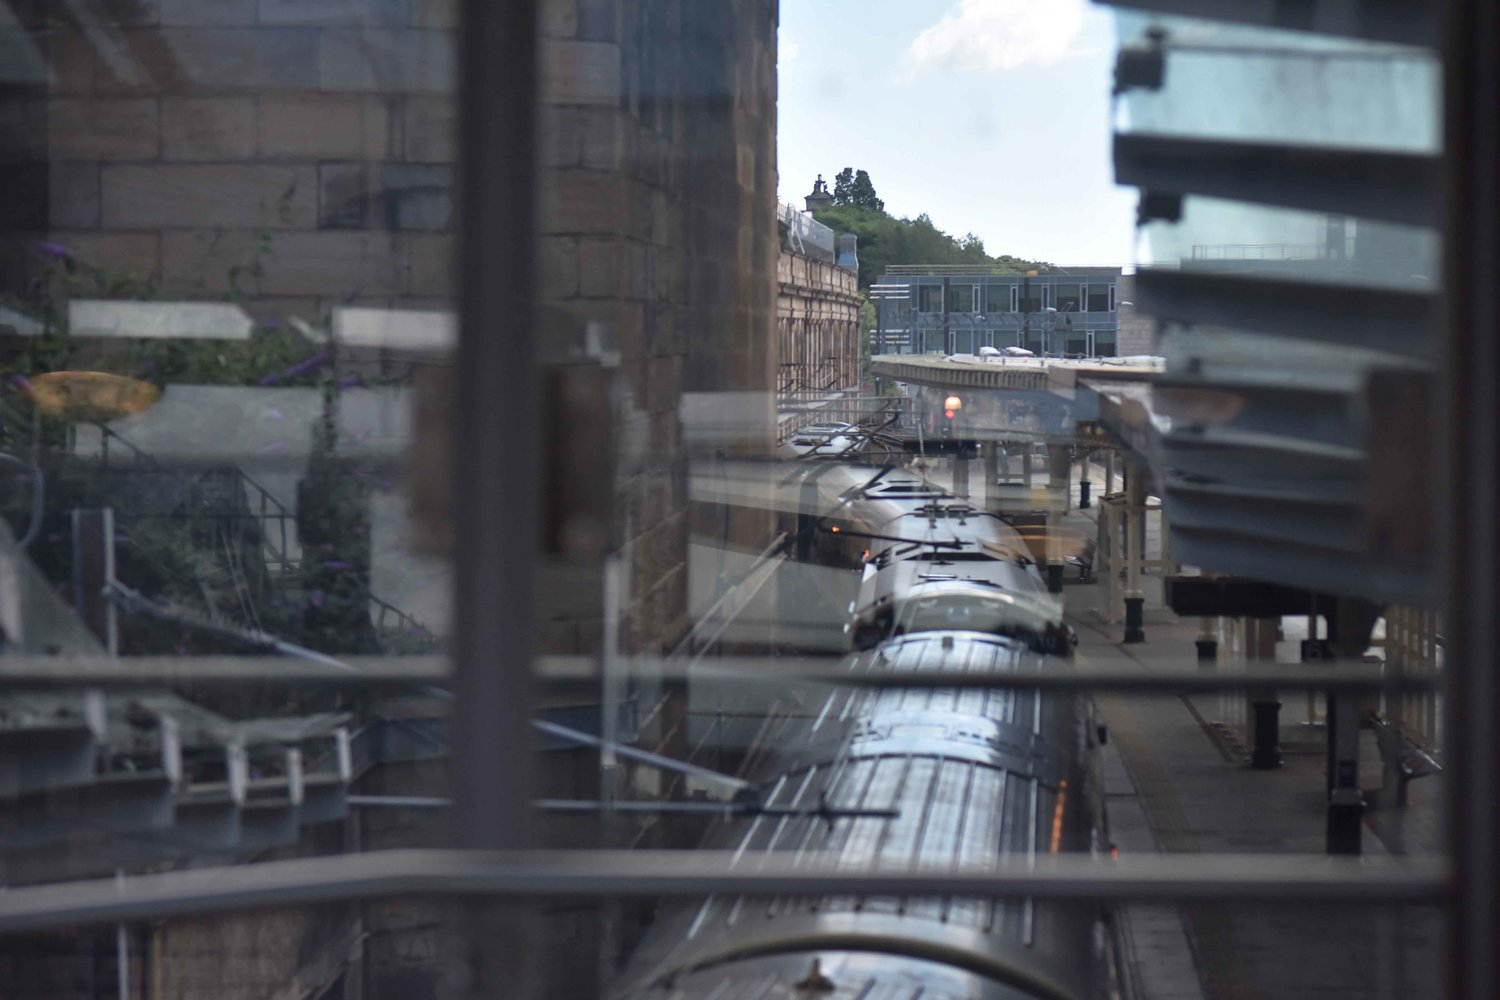 Edinburgh Waverly, railway station, Edinburgh, Scotland. Image©thingstodot.com